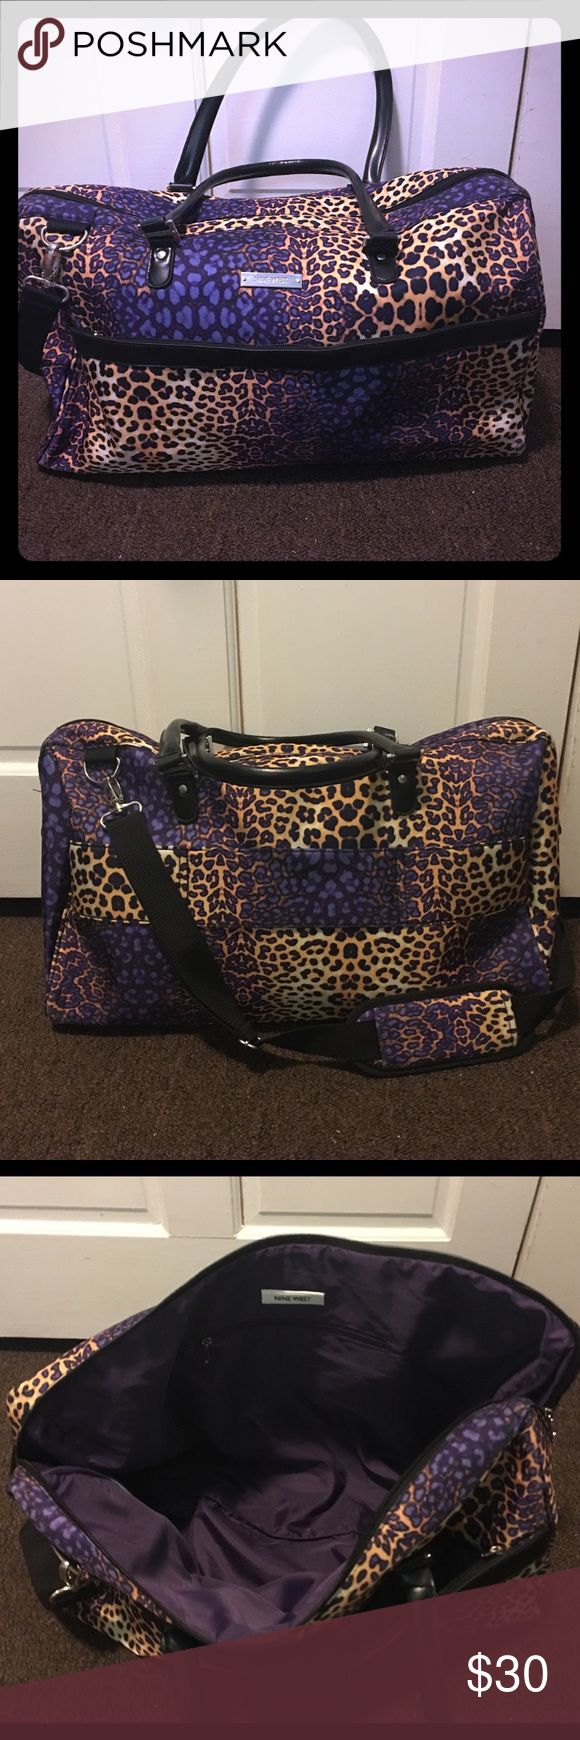 "Nine West Leopard Print Overnight/Weekender Bag This adorable leopard print bag is great for overnight, or even for a weekend away. It has soft material, so it can easily fit any need. The material is tough enough that it could be folded as an extra bag and checked full of souvenirs! It's in like new condition, used a few times, with no signs of wear or tear. It has two sturdy handles, as well as a tough detachable shoulder strap. It measures approximately 8"" wide, 21.5"" long, and 14.5""…"